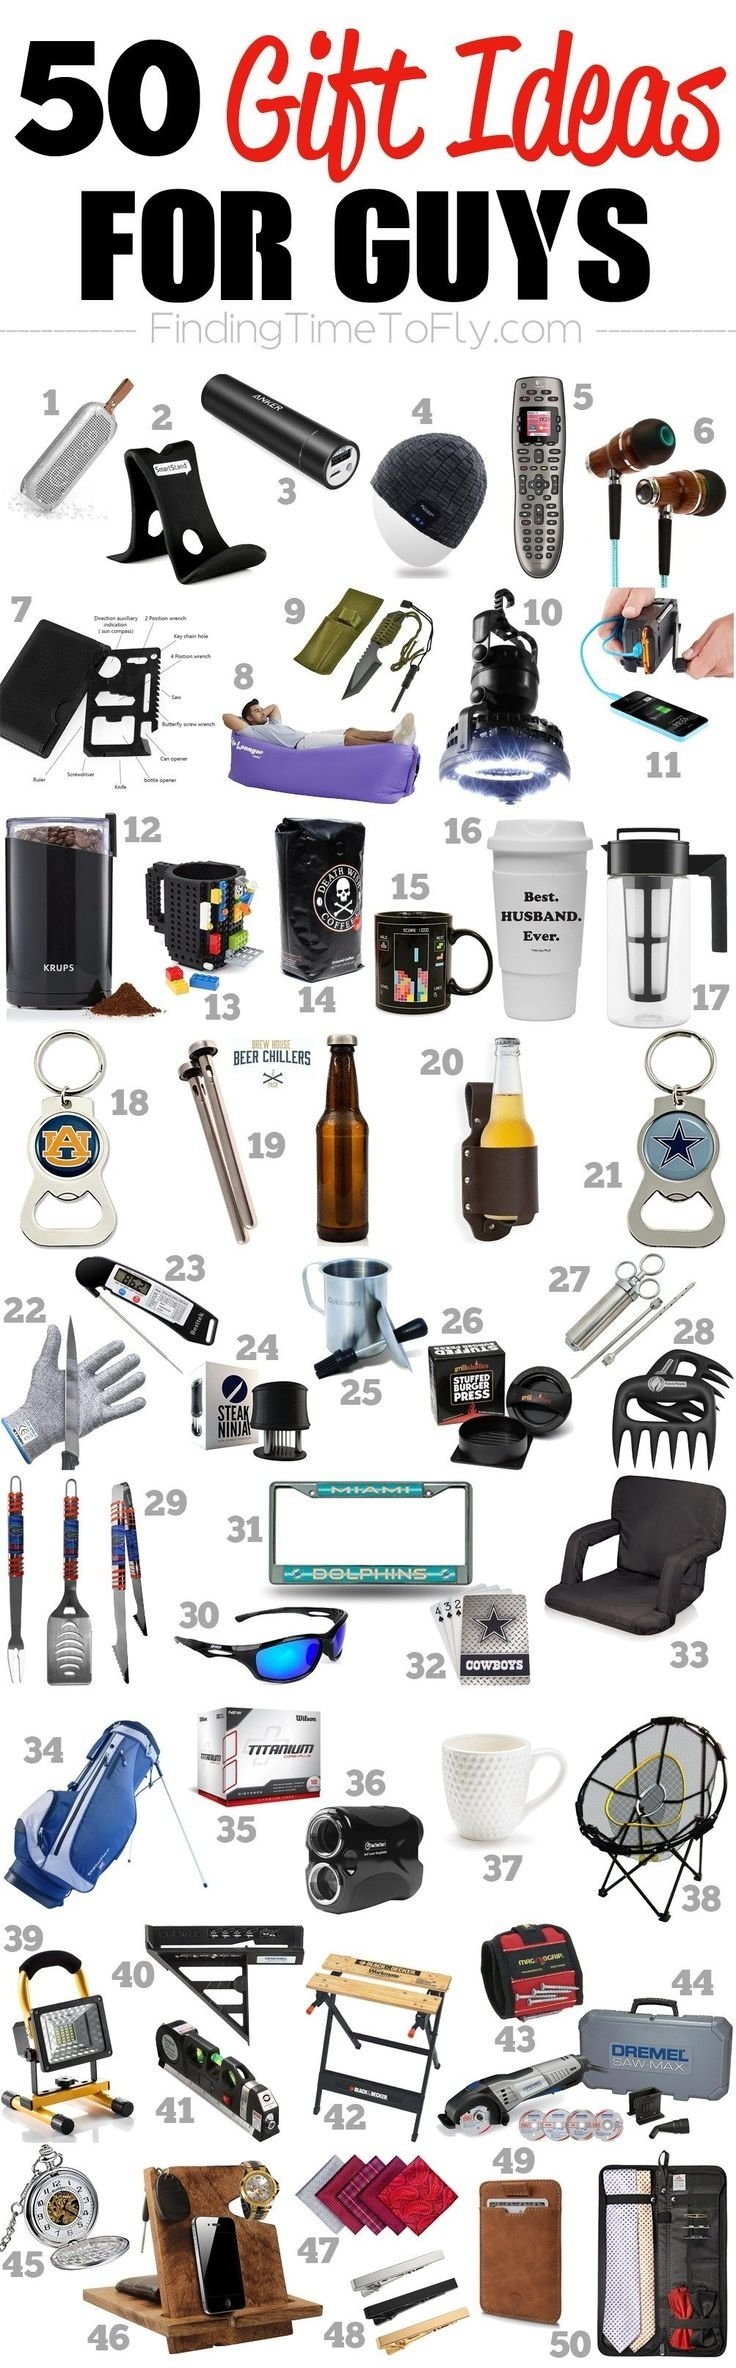 10 Best Gift Ideas For Men Birthday 178 Gifts Him Images